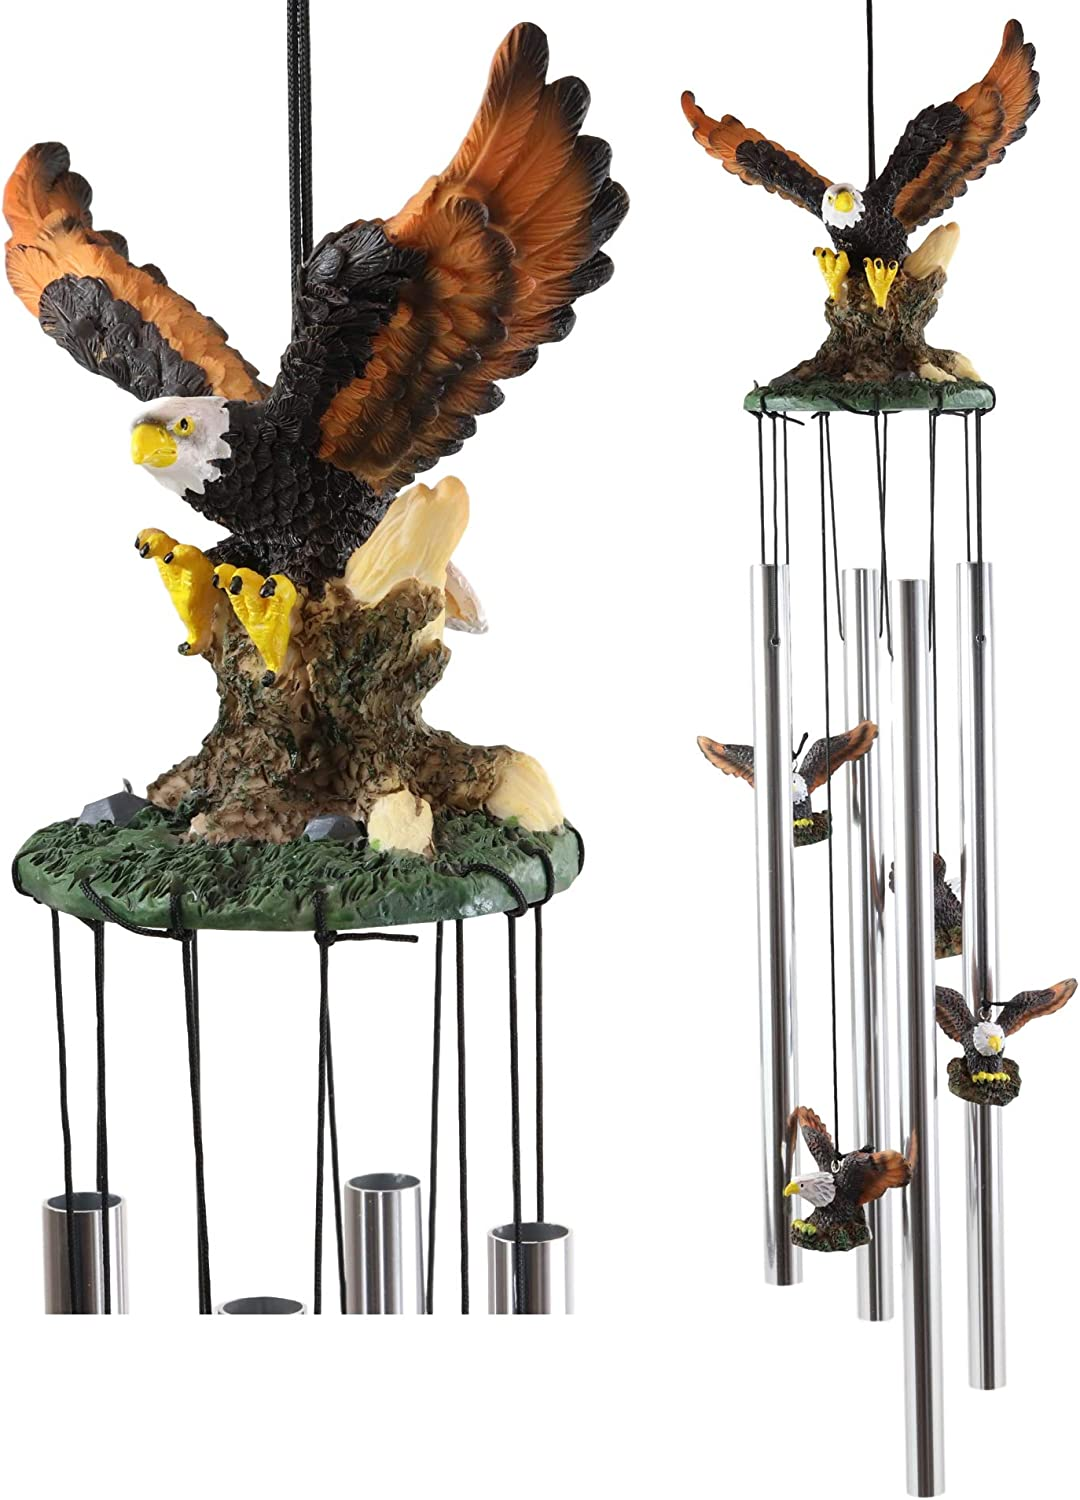 Ebros Gift Colorful American Bald Eagle Spreading Out Its Wings Resonant Relaxing Wind Chime Patio Garden Decor Wild Birds of Prey Eagles Swooping Resin Sculpture with Aluminum Rods